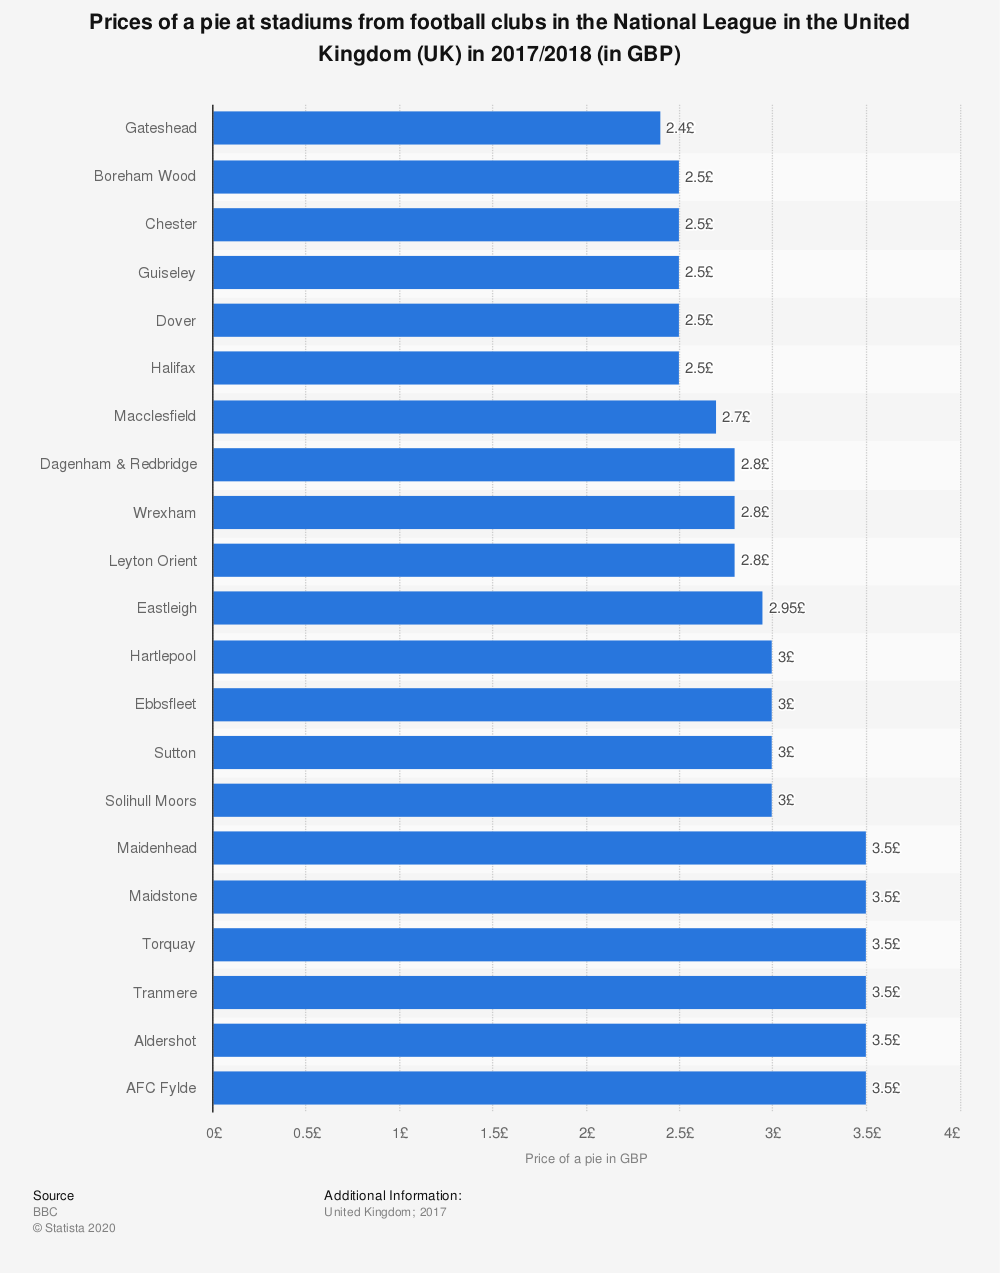 Statistic: Prices of a pie at stadiums from football clubs in the National League in the United Kingdom (UK) in 2017/2018 (in GBP) | Statista